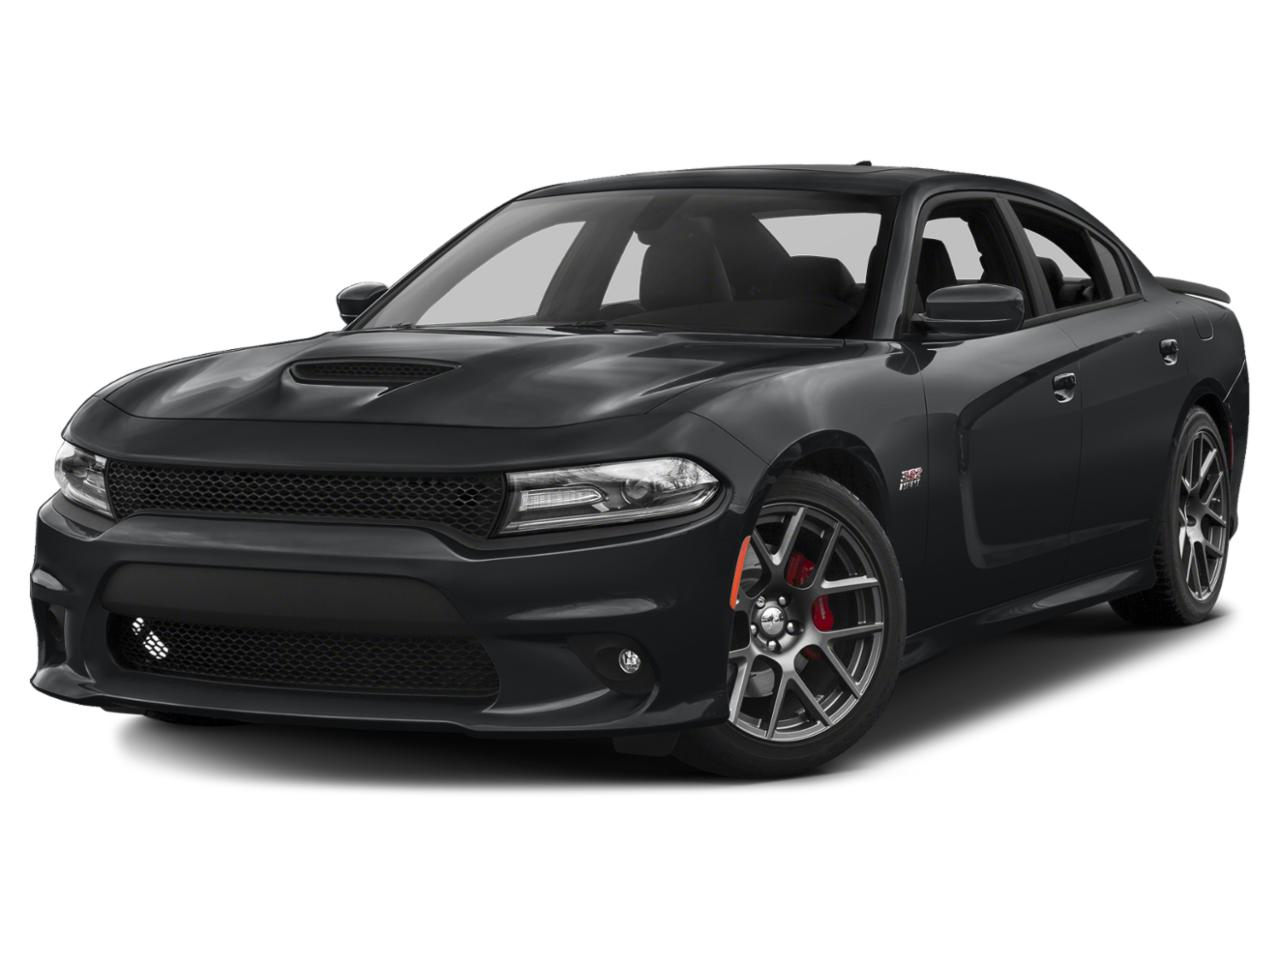 2018 Dodge Charger Vehicle Photo in Colma, CA 94014